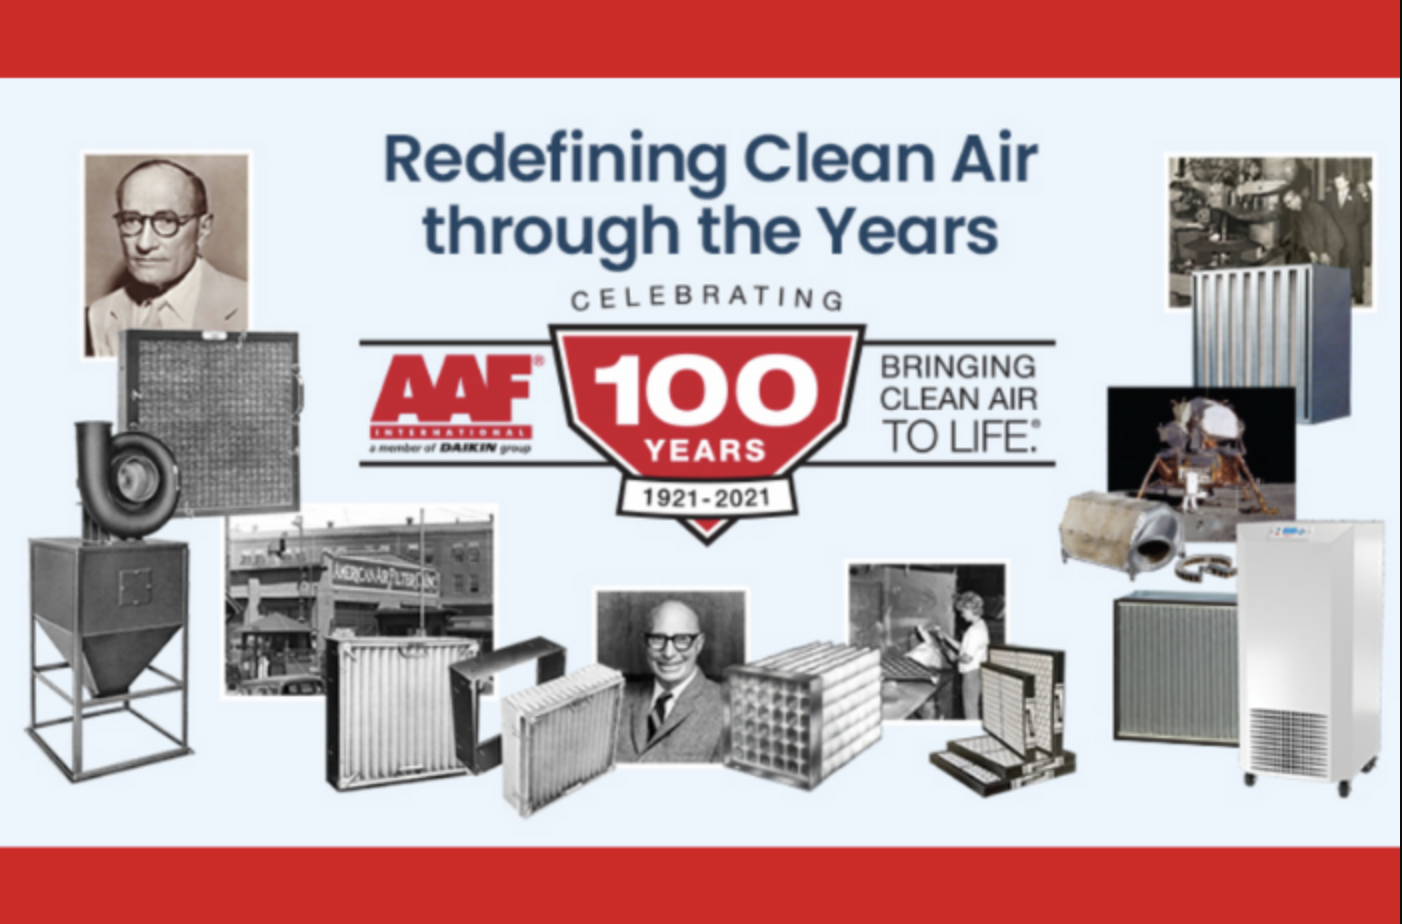 AAF: Redefining Clean Air through the Years